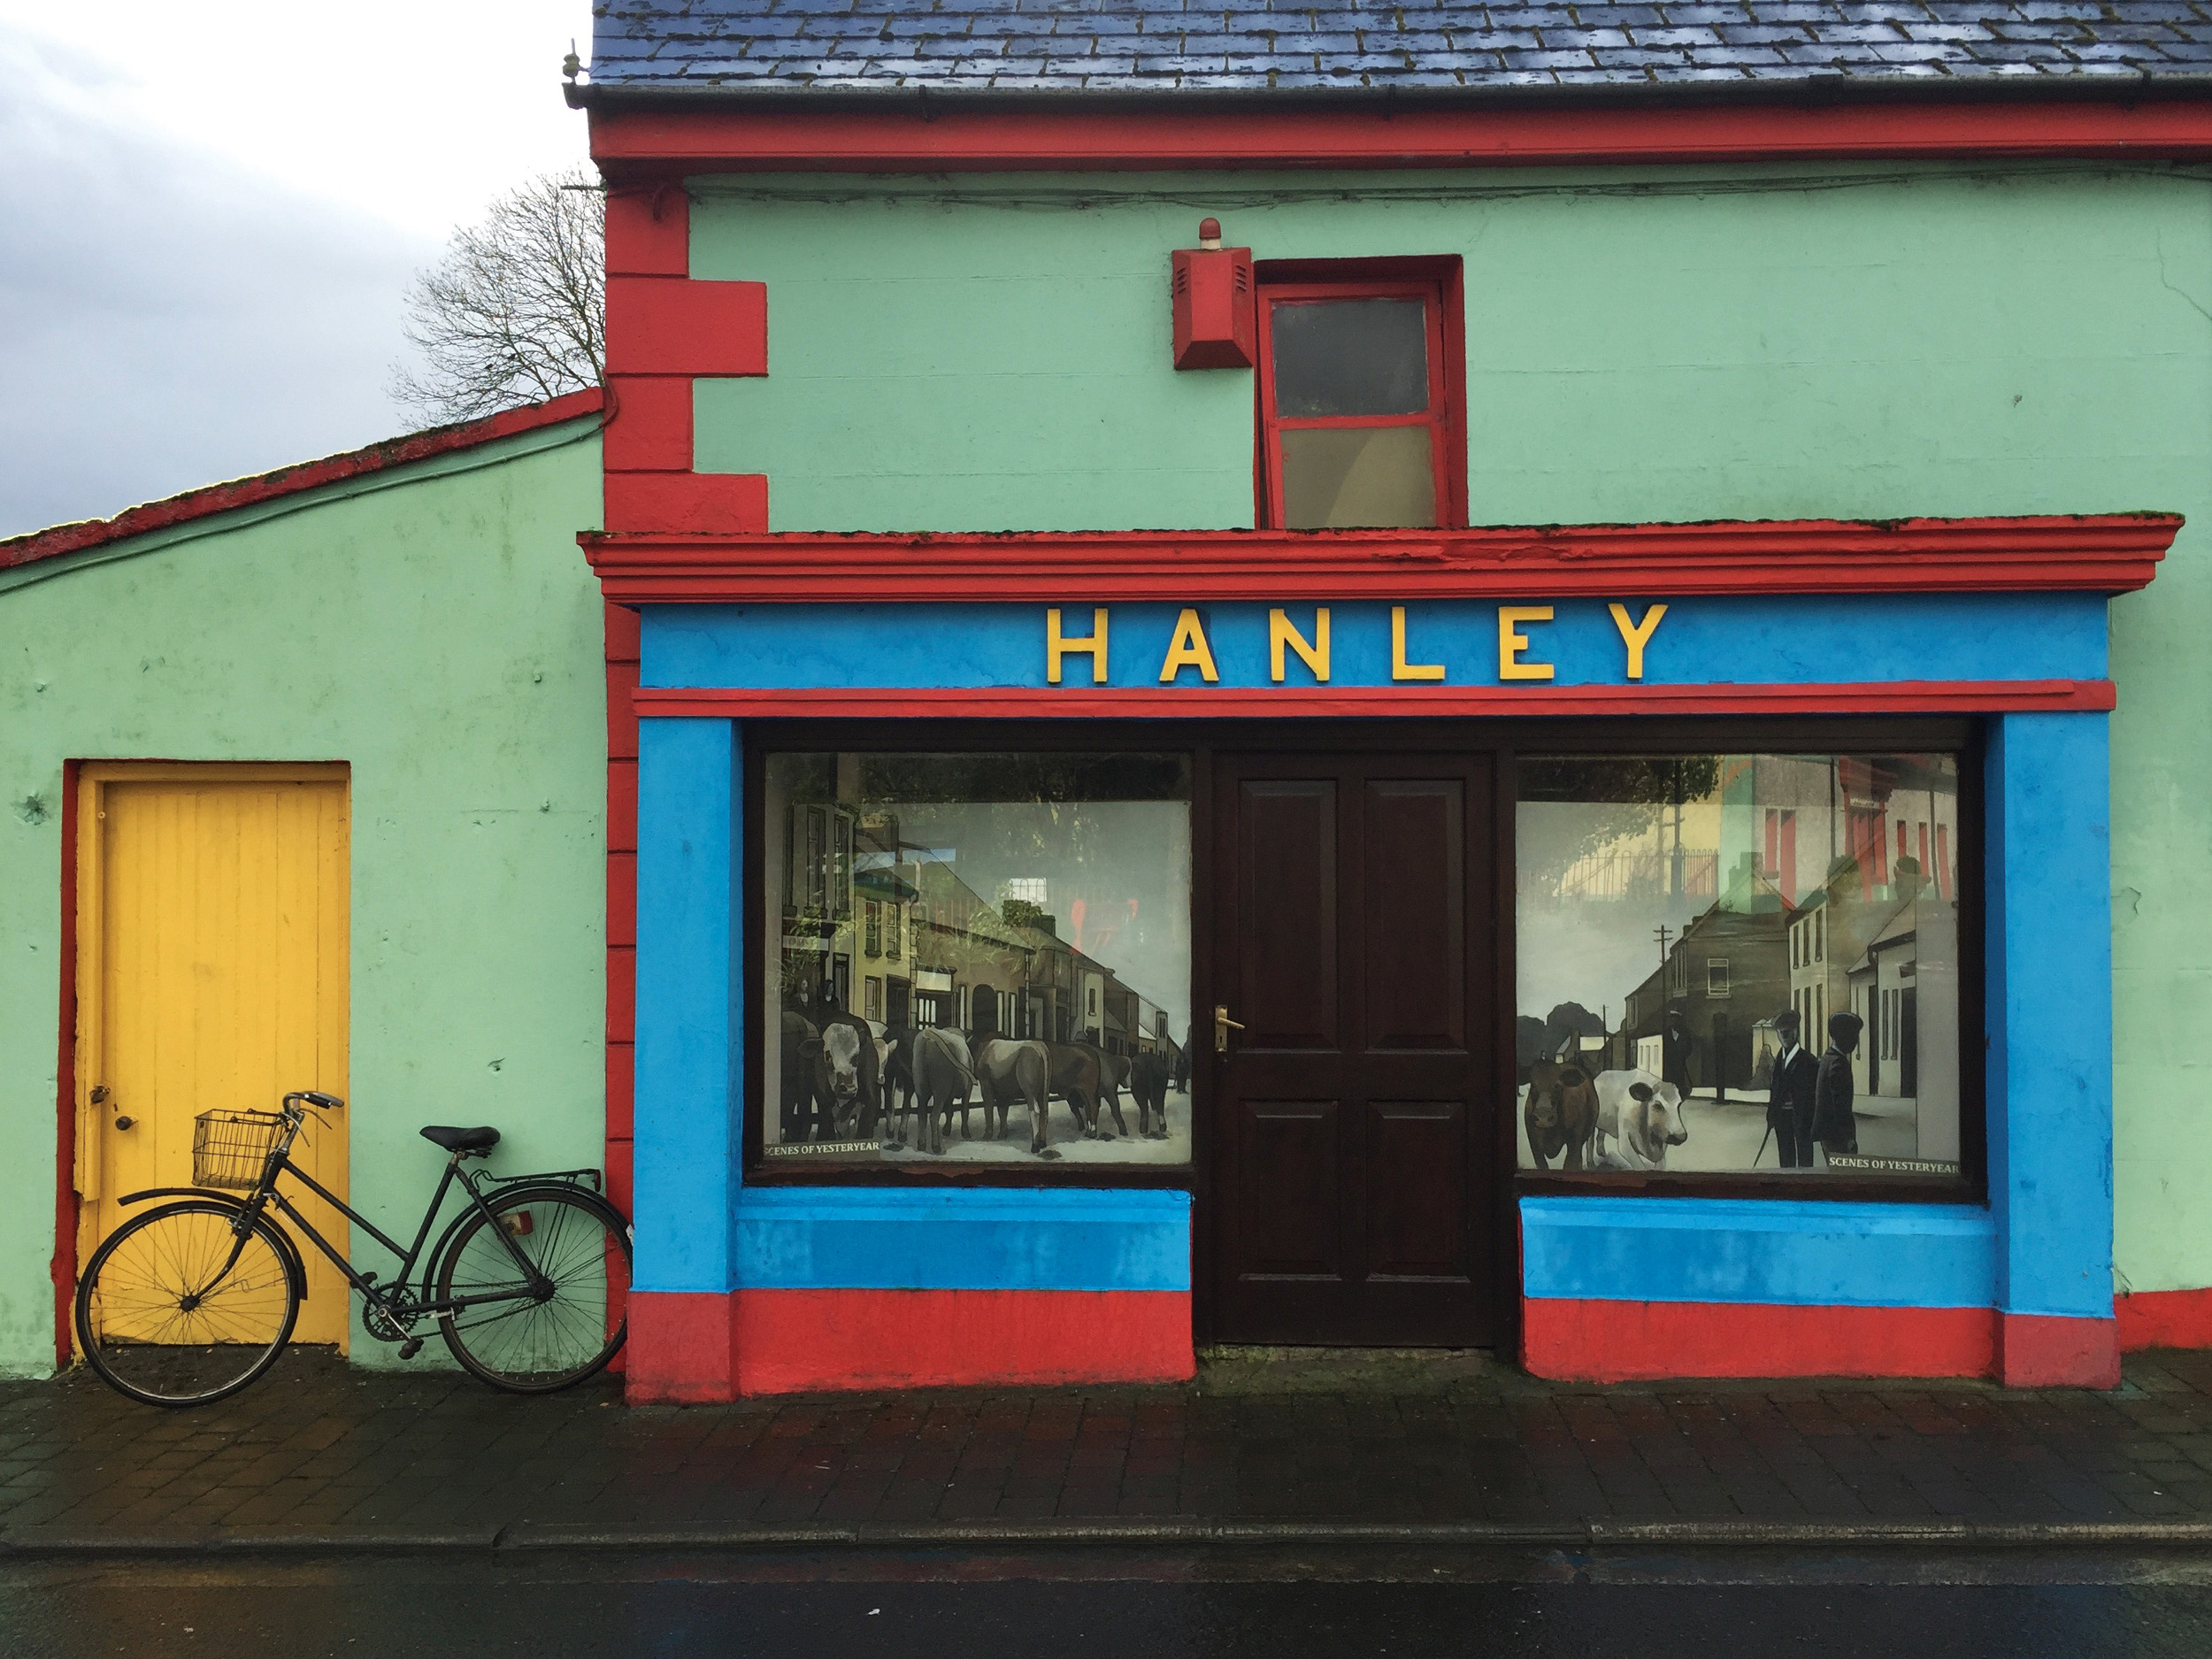 Hanley's Pub in Emly, County Tipperary